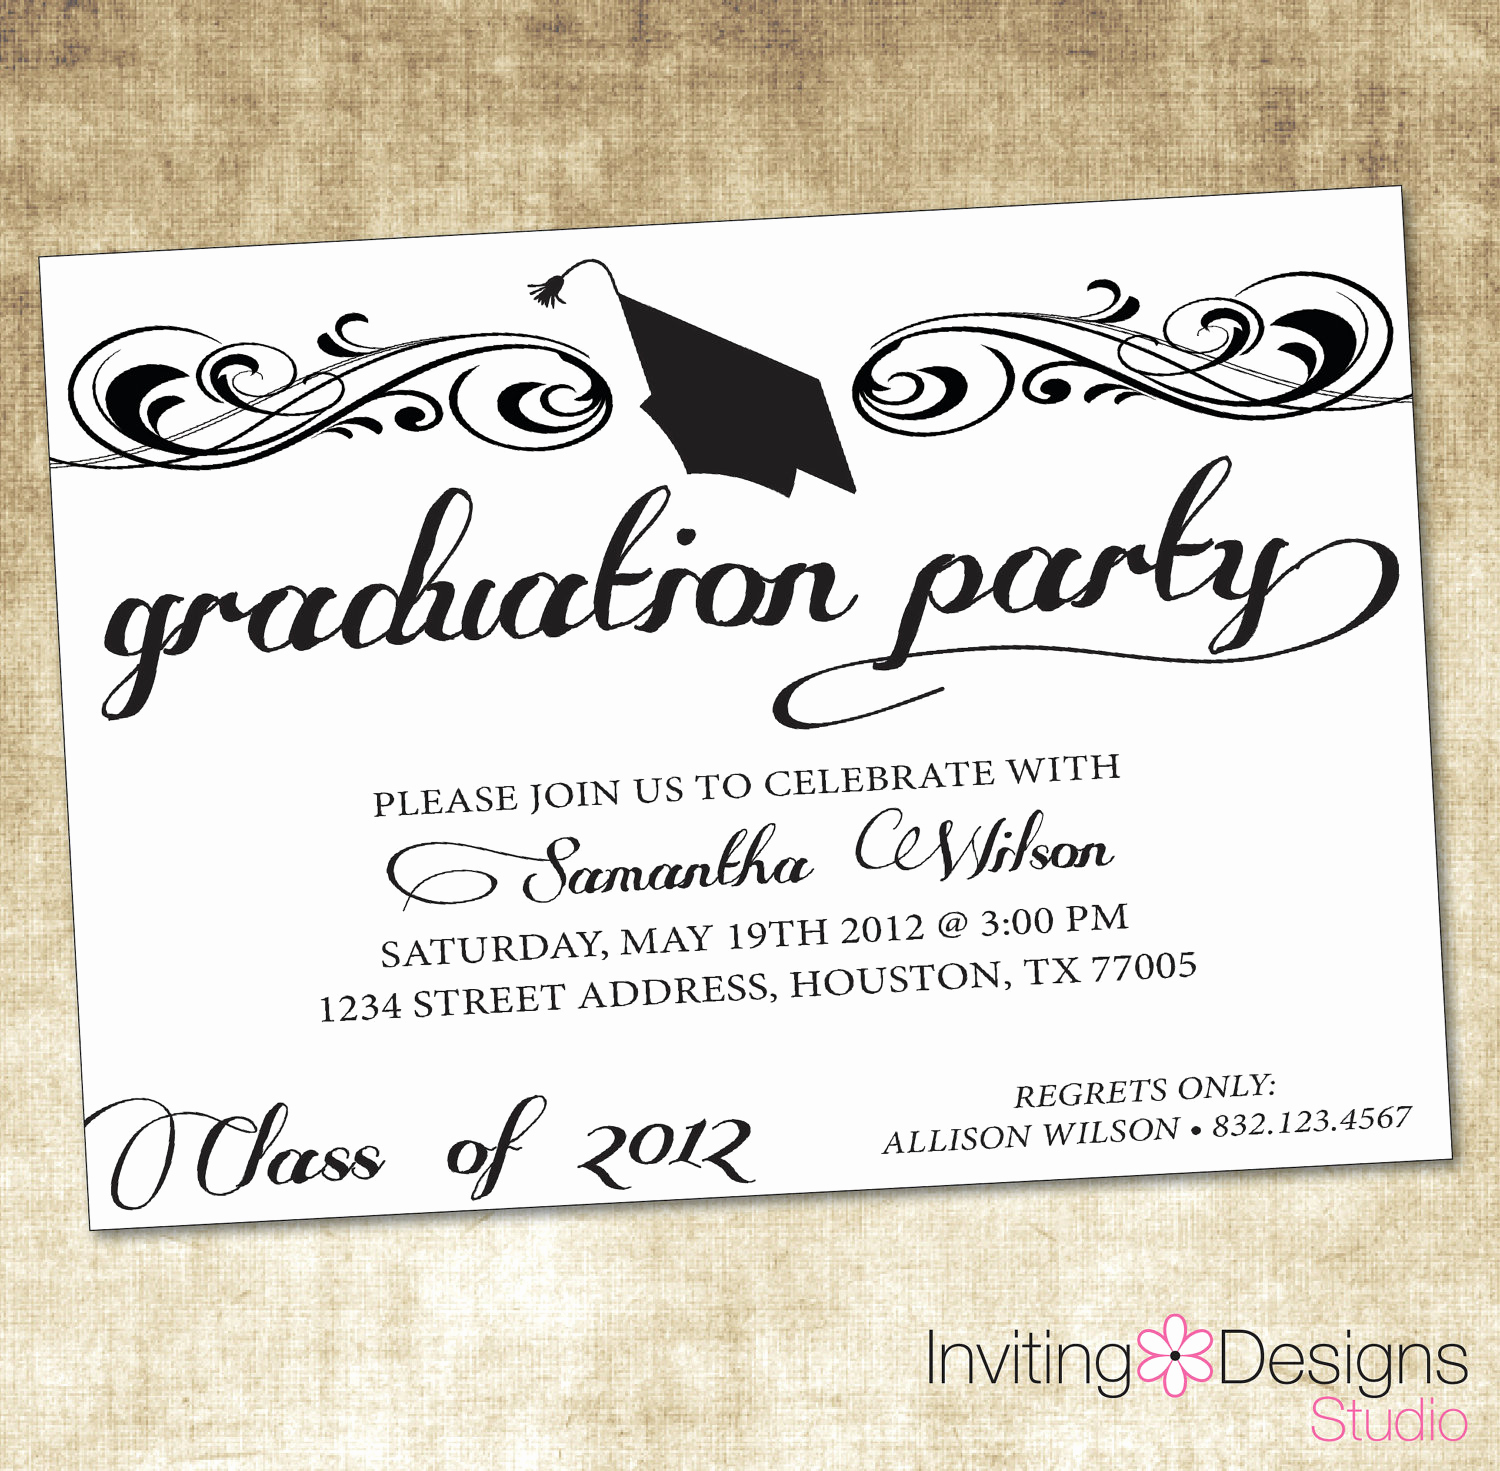 Graduation Invitation Announcement Wording Awesome Quotes for Graduation Party Invitations Quotesgram